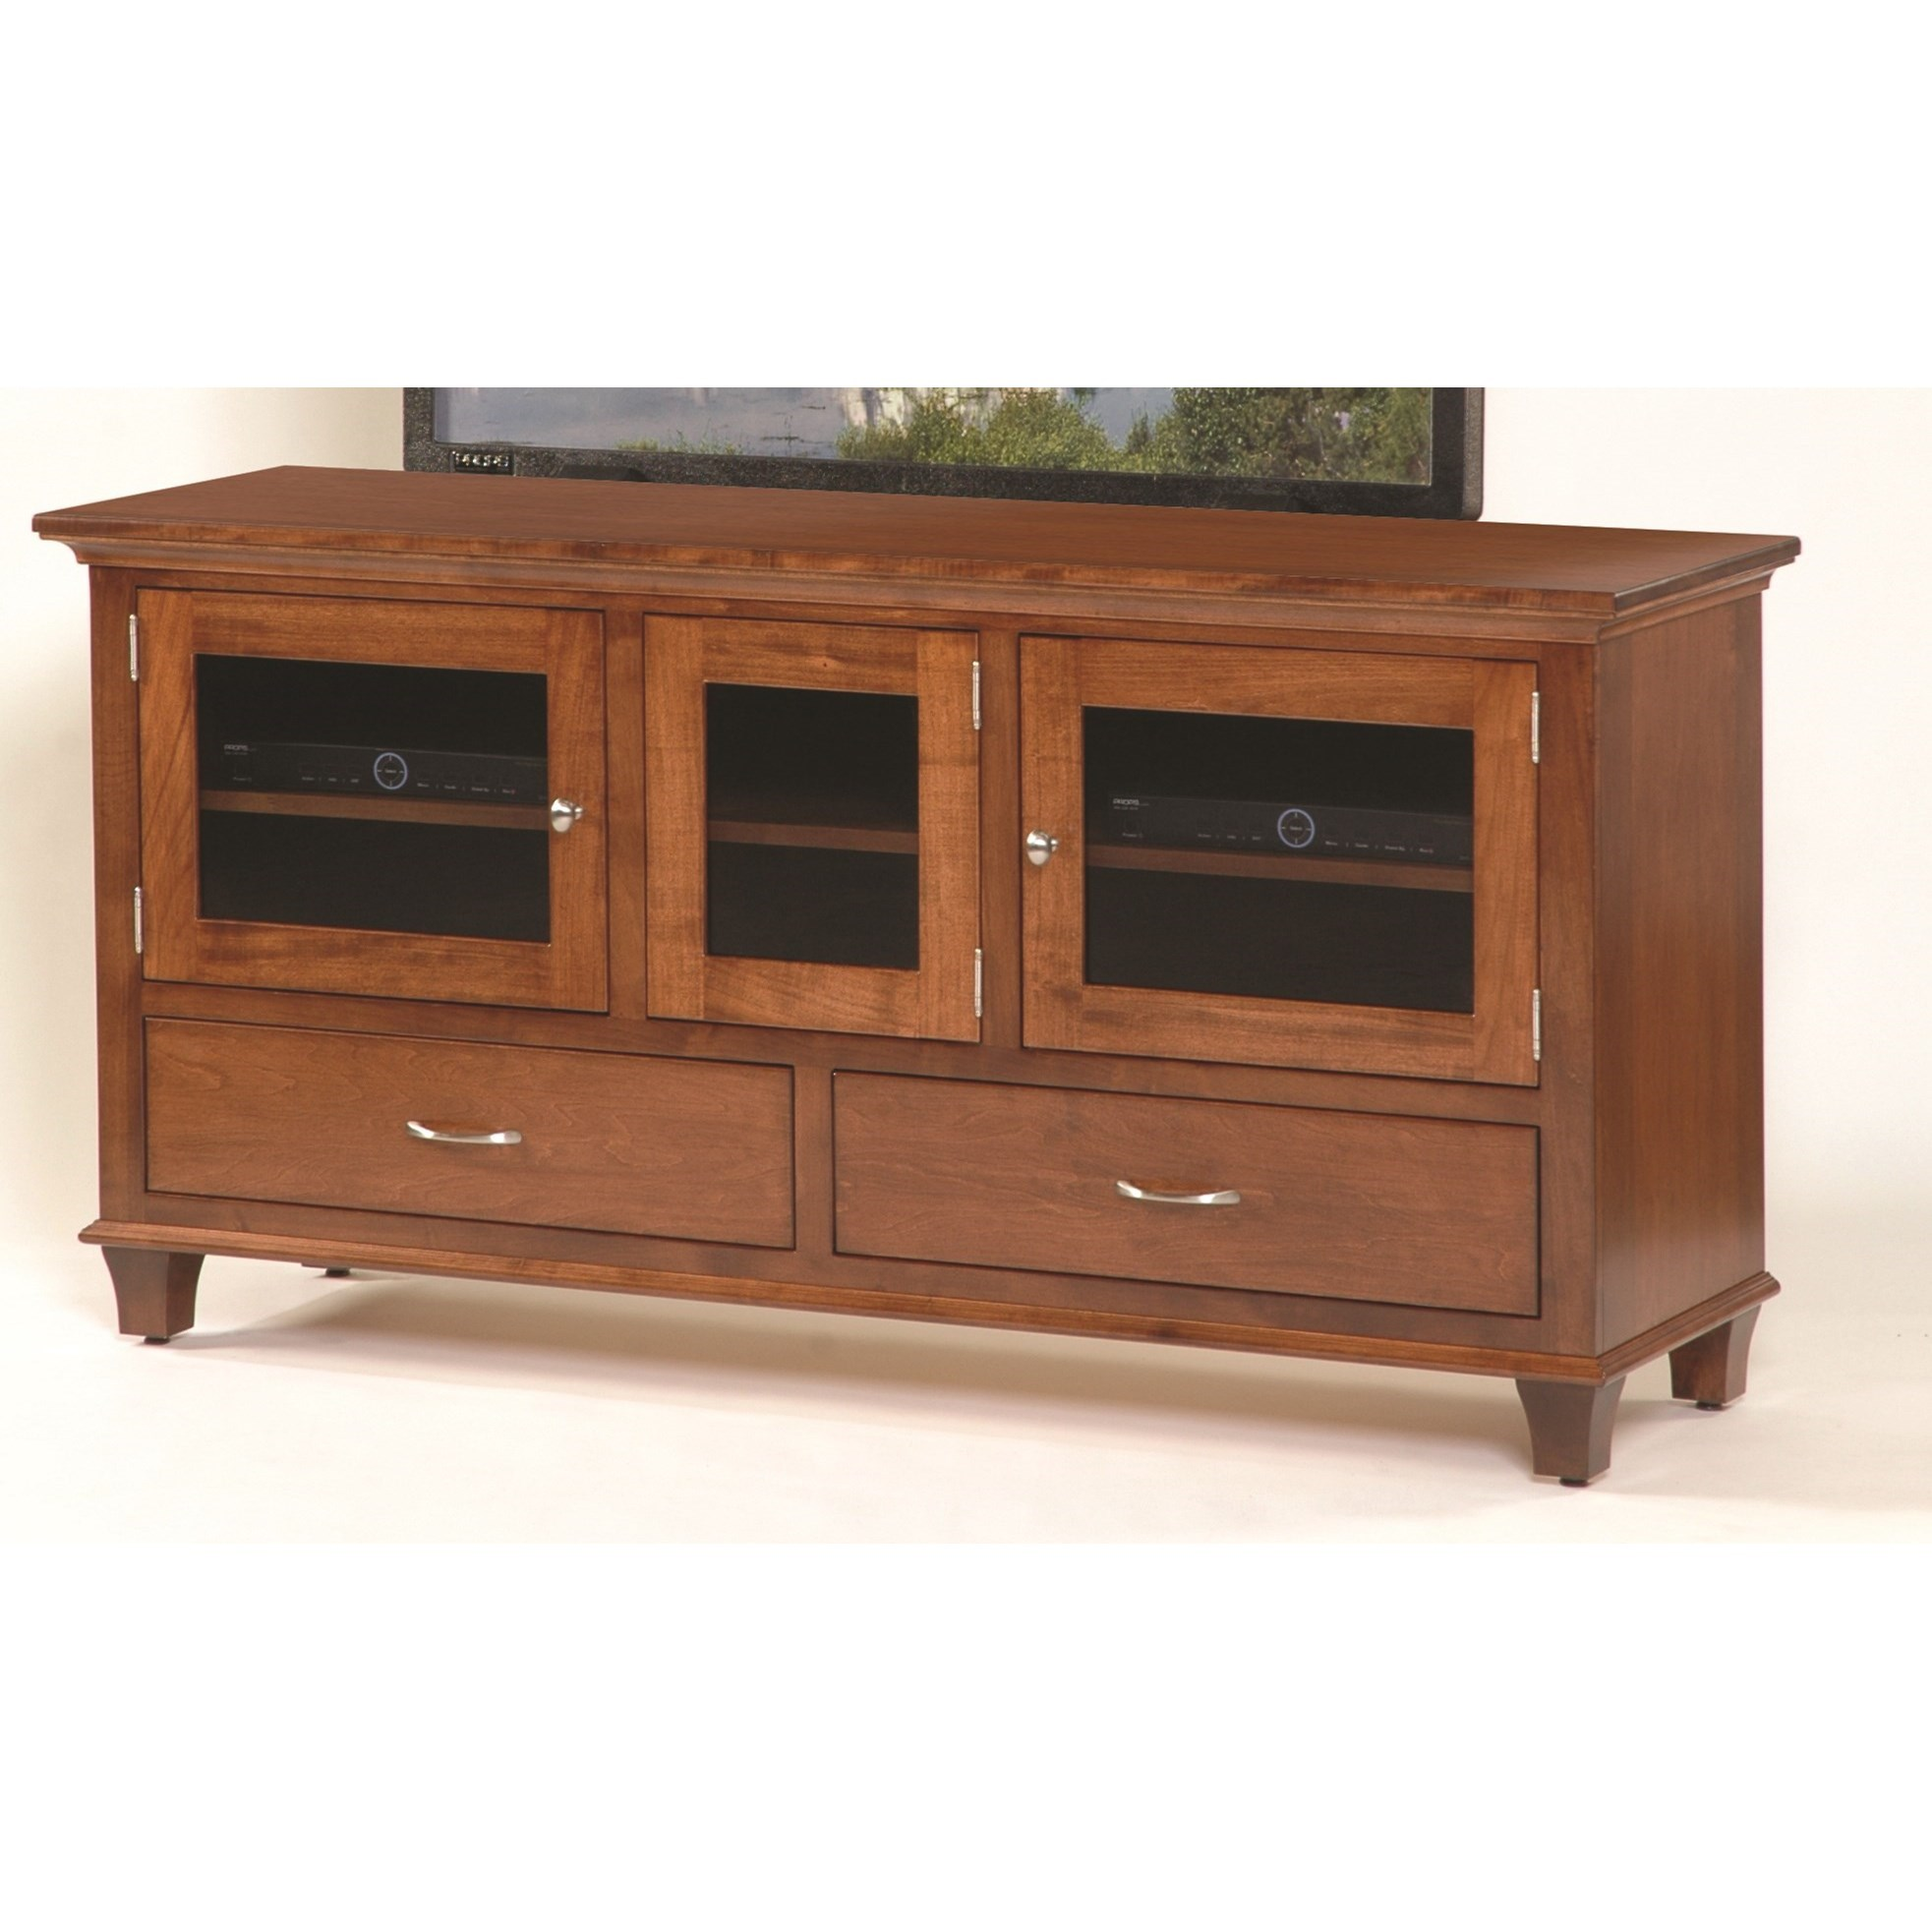 """Entertainment Bourten 63"""" TV Stand by INTEG Wood Products at Saugerties Furniture Mart"""